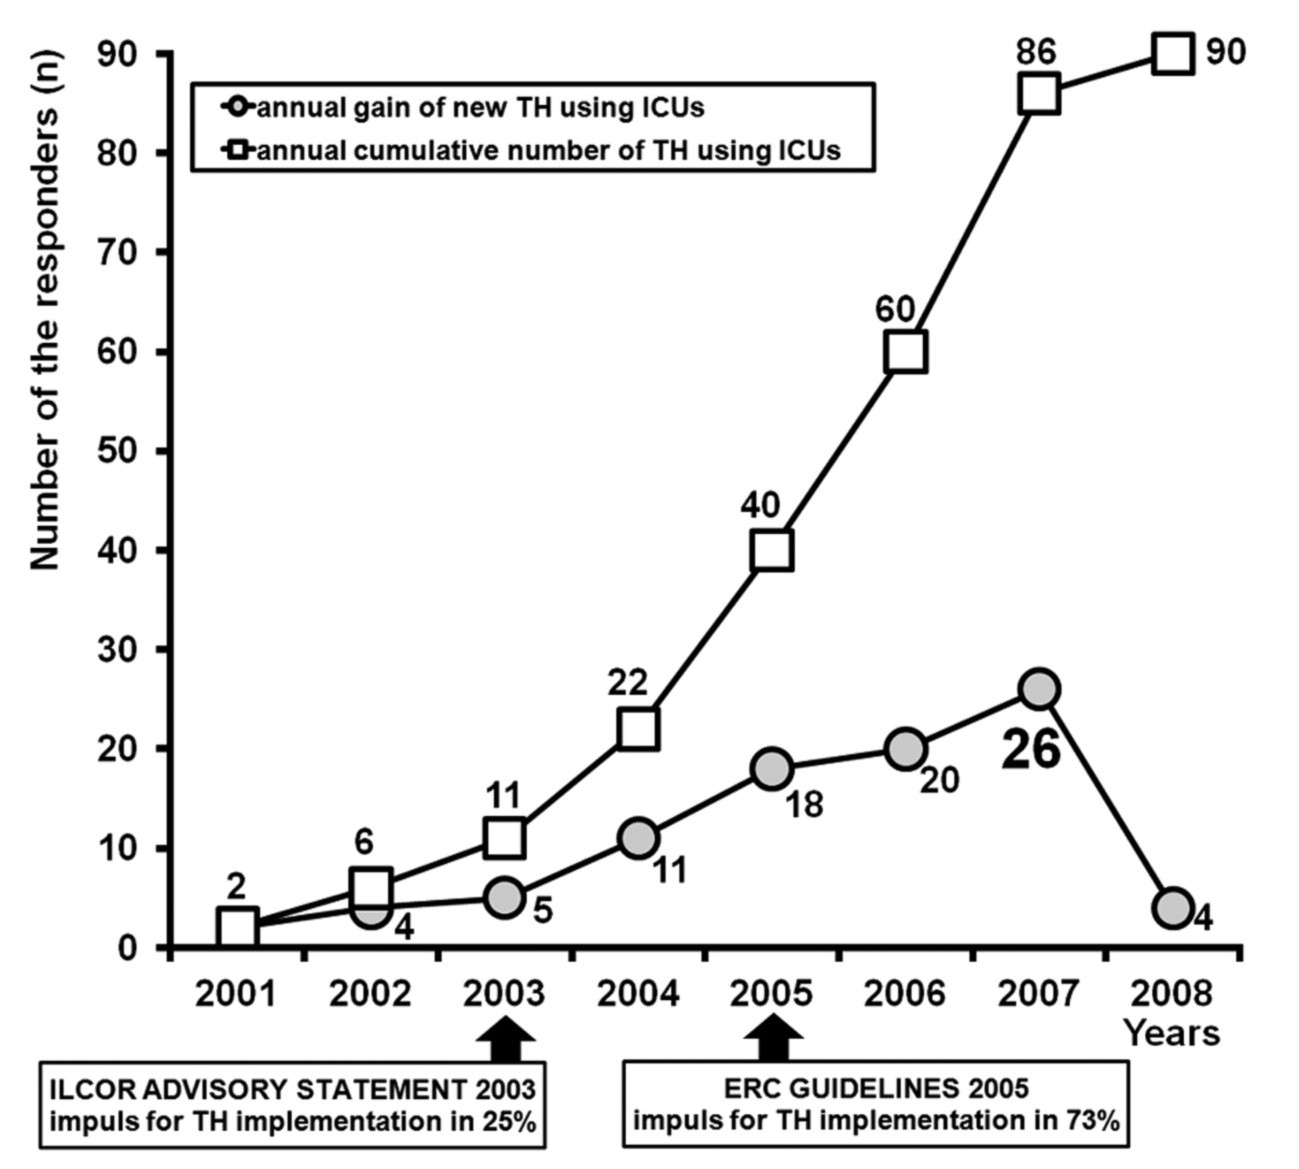 Fig. 2. The annual gain of new TH using ICUs and the cumulative number of TH using ICUs ILCOR 2003 – therapeutic hypothermia after cardiac arrest. An advisory statement by the Advancement Life support Task Force of the International Liaison committee on Resuscitation1; ERC 2005 – European Resuscitation Council guidelines for resuscitation 20052; TH – therapeutic mild hypothermia; ICU – intensive care unit